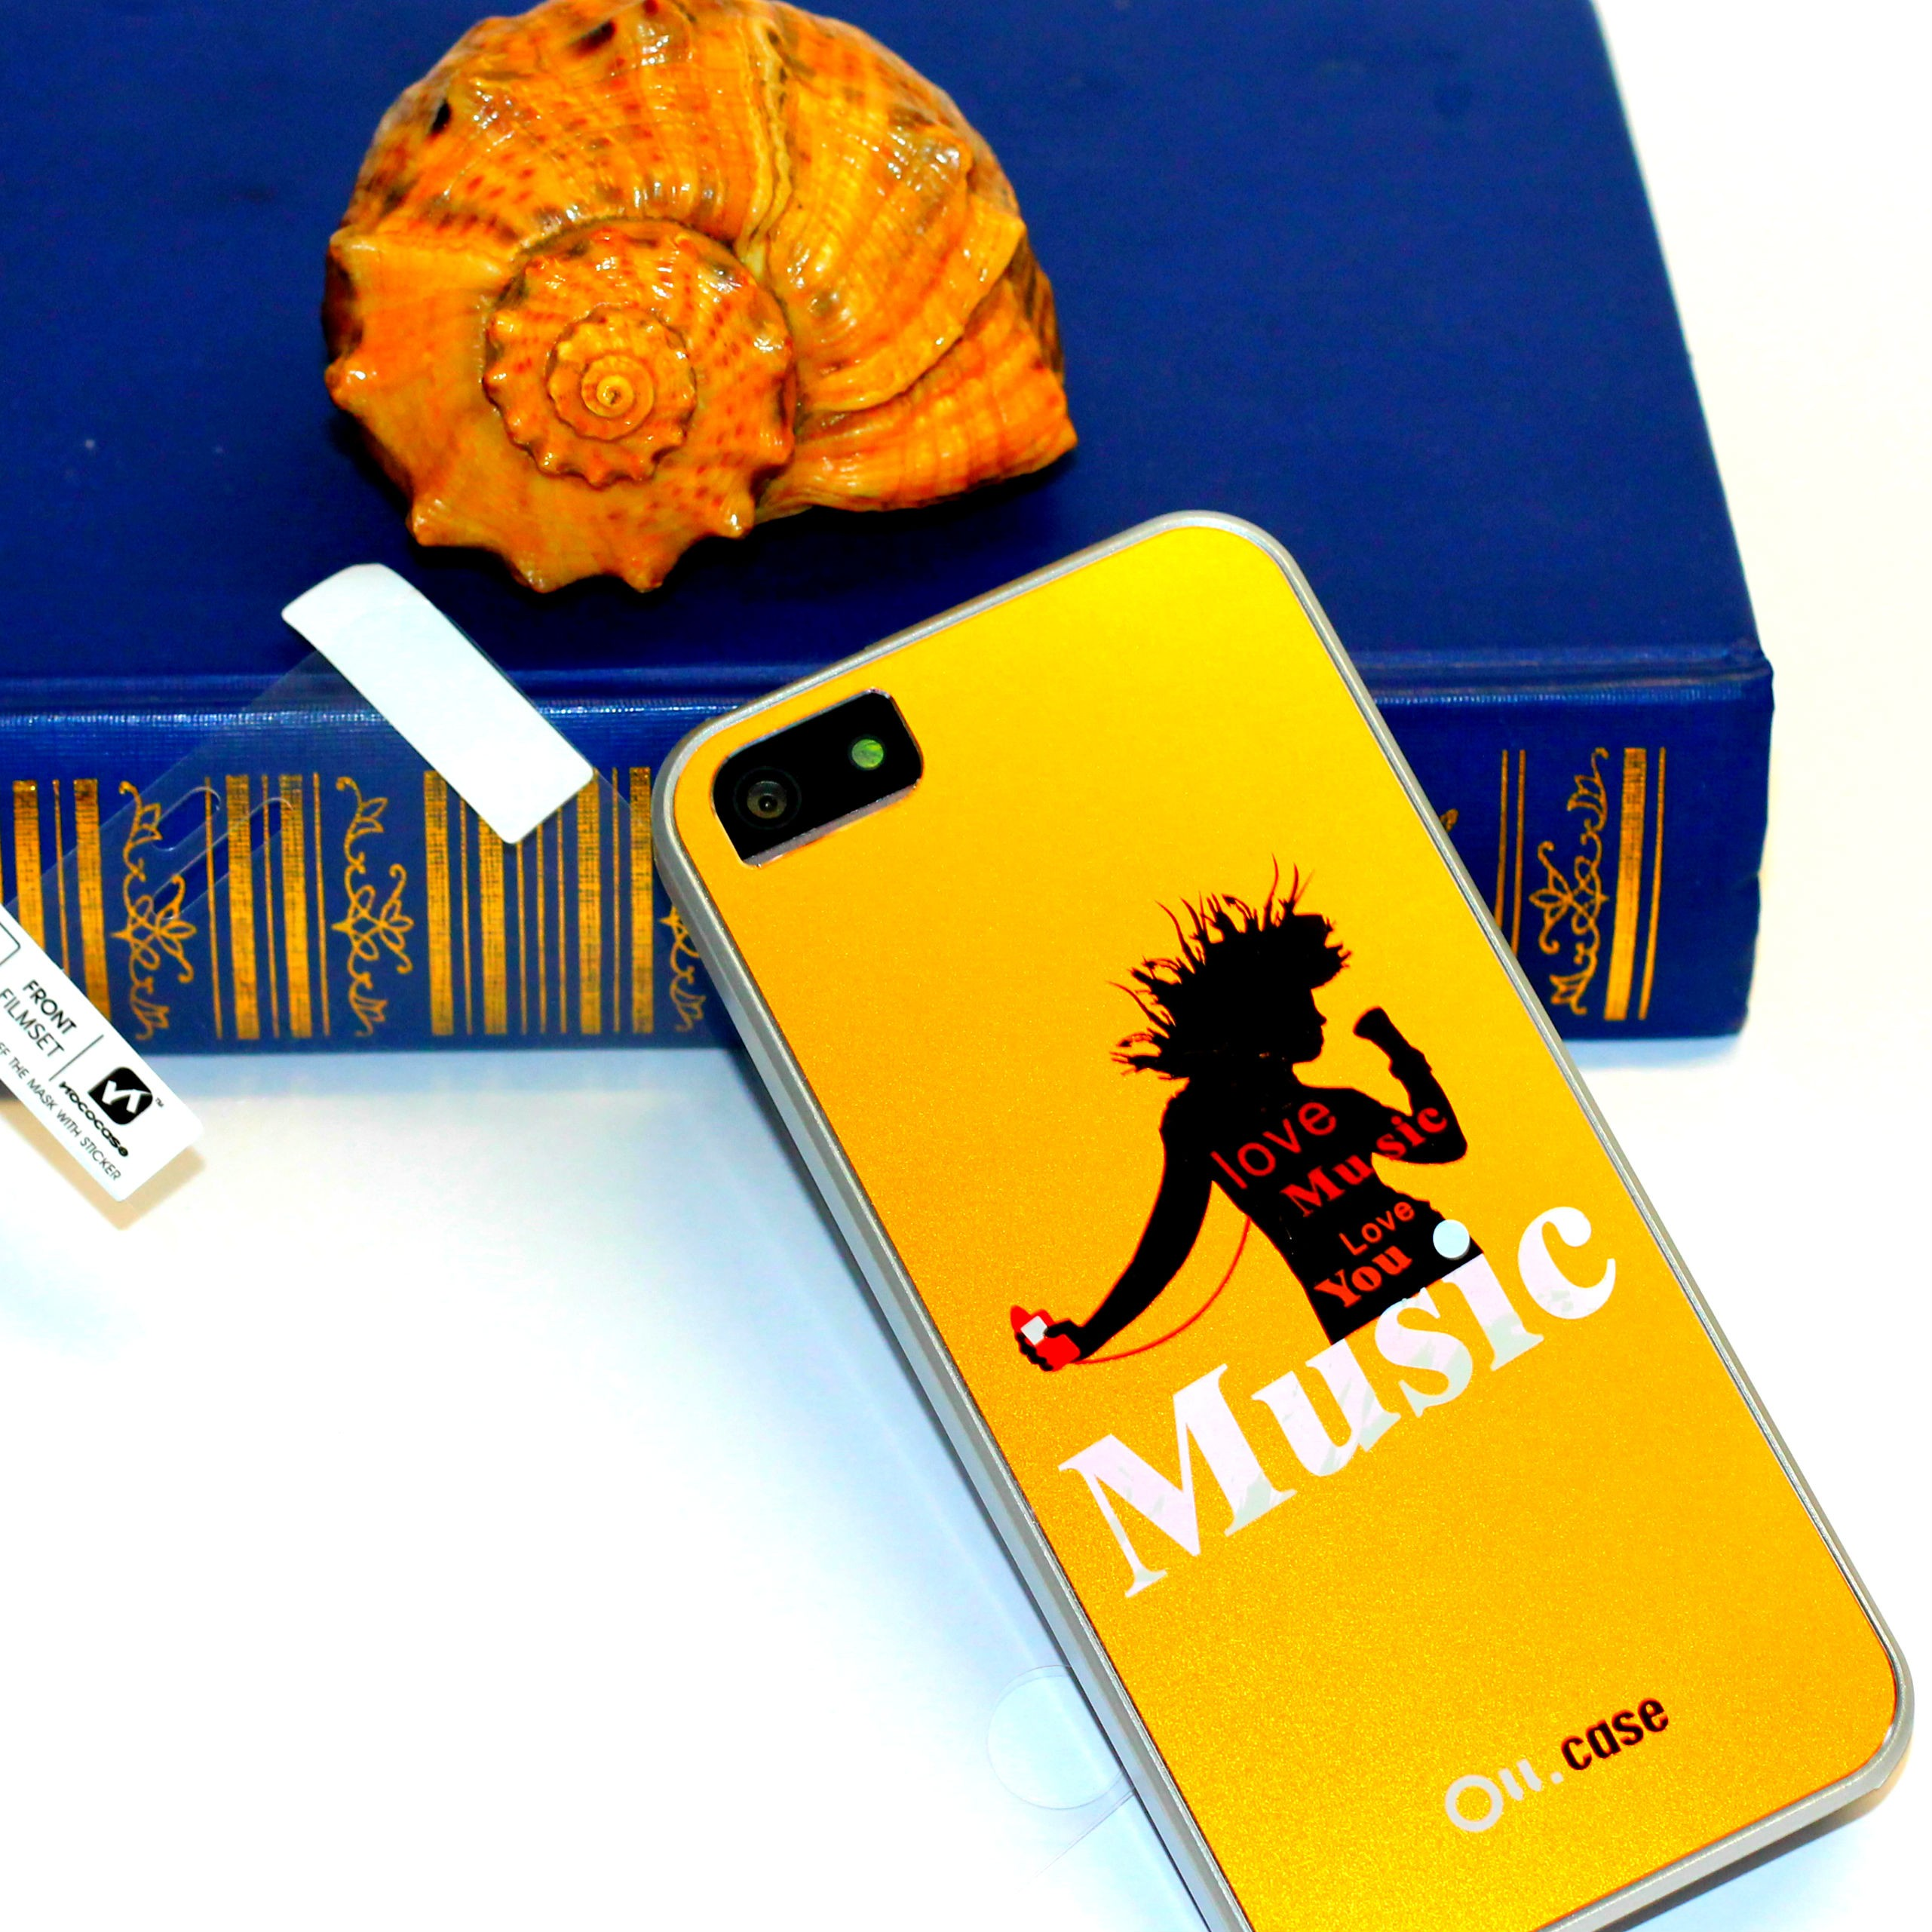 Ou.case Love Music for iPhone 5, black (OI-T001)